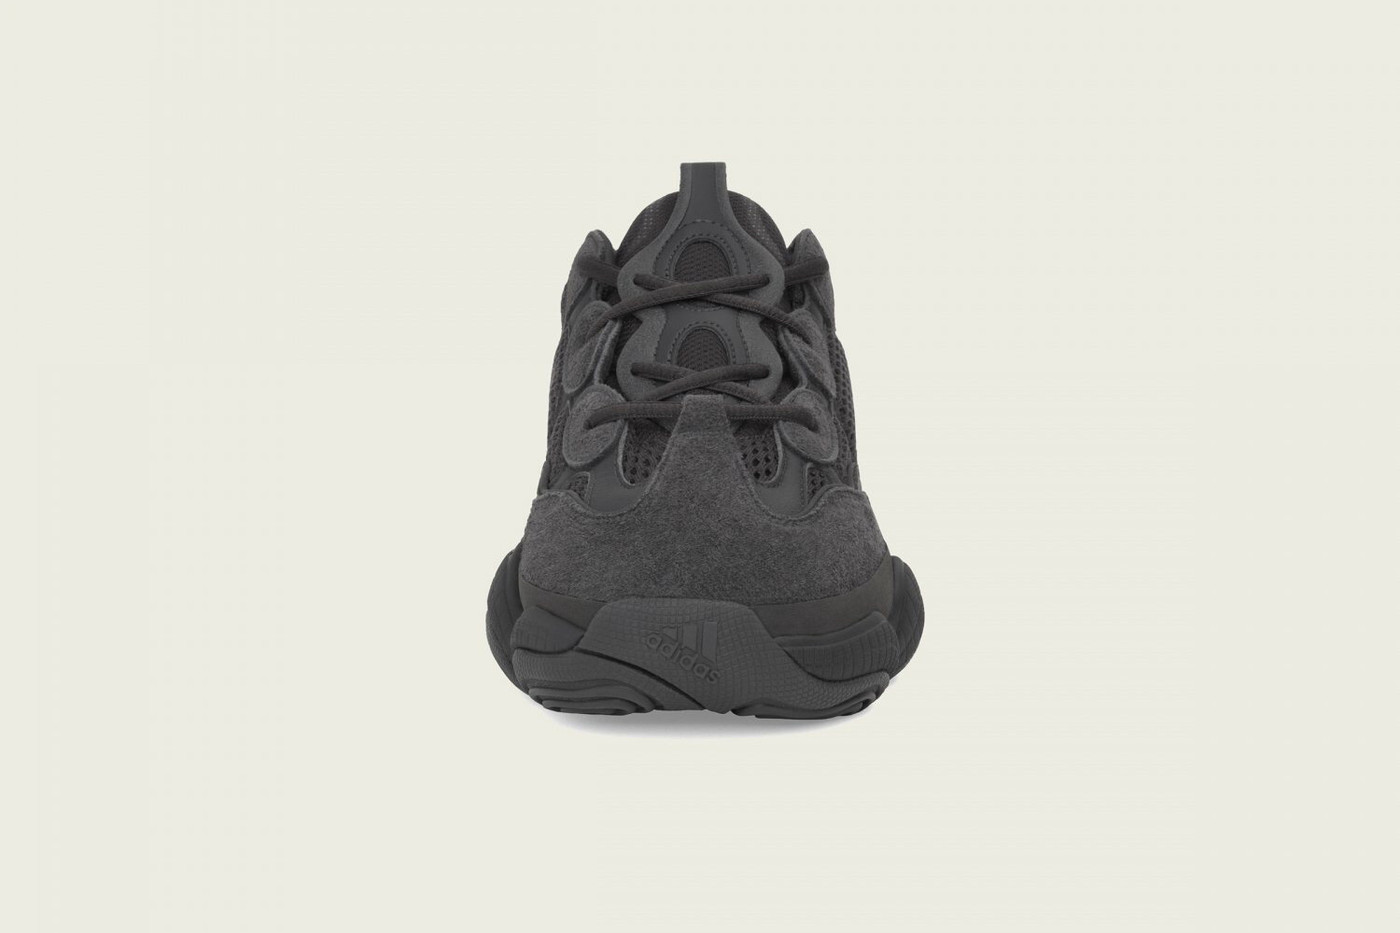 Adidas-Yeezy-500-Utility-Black-Front-View